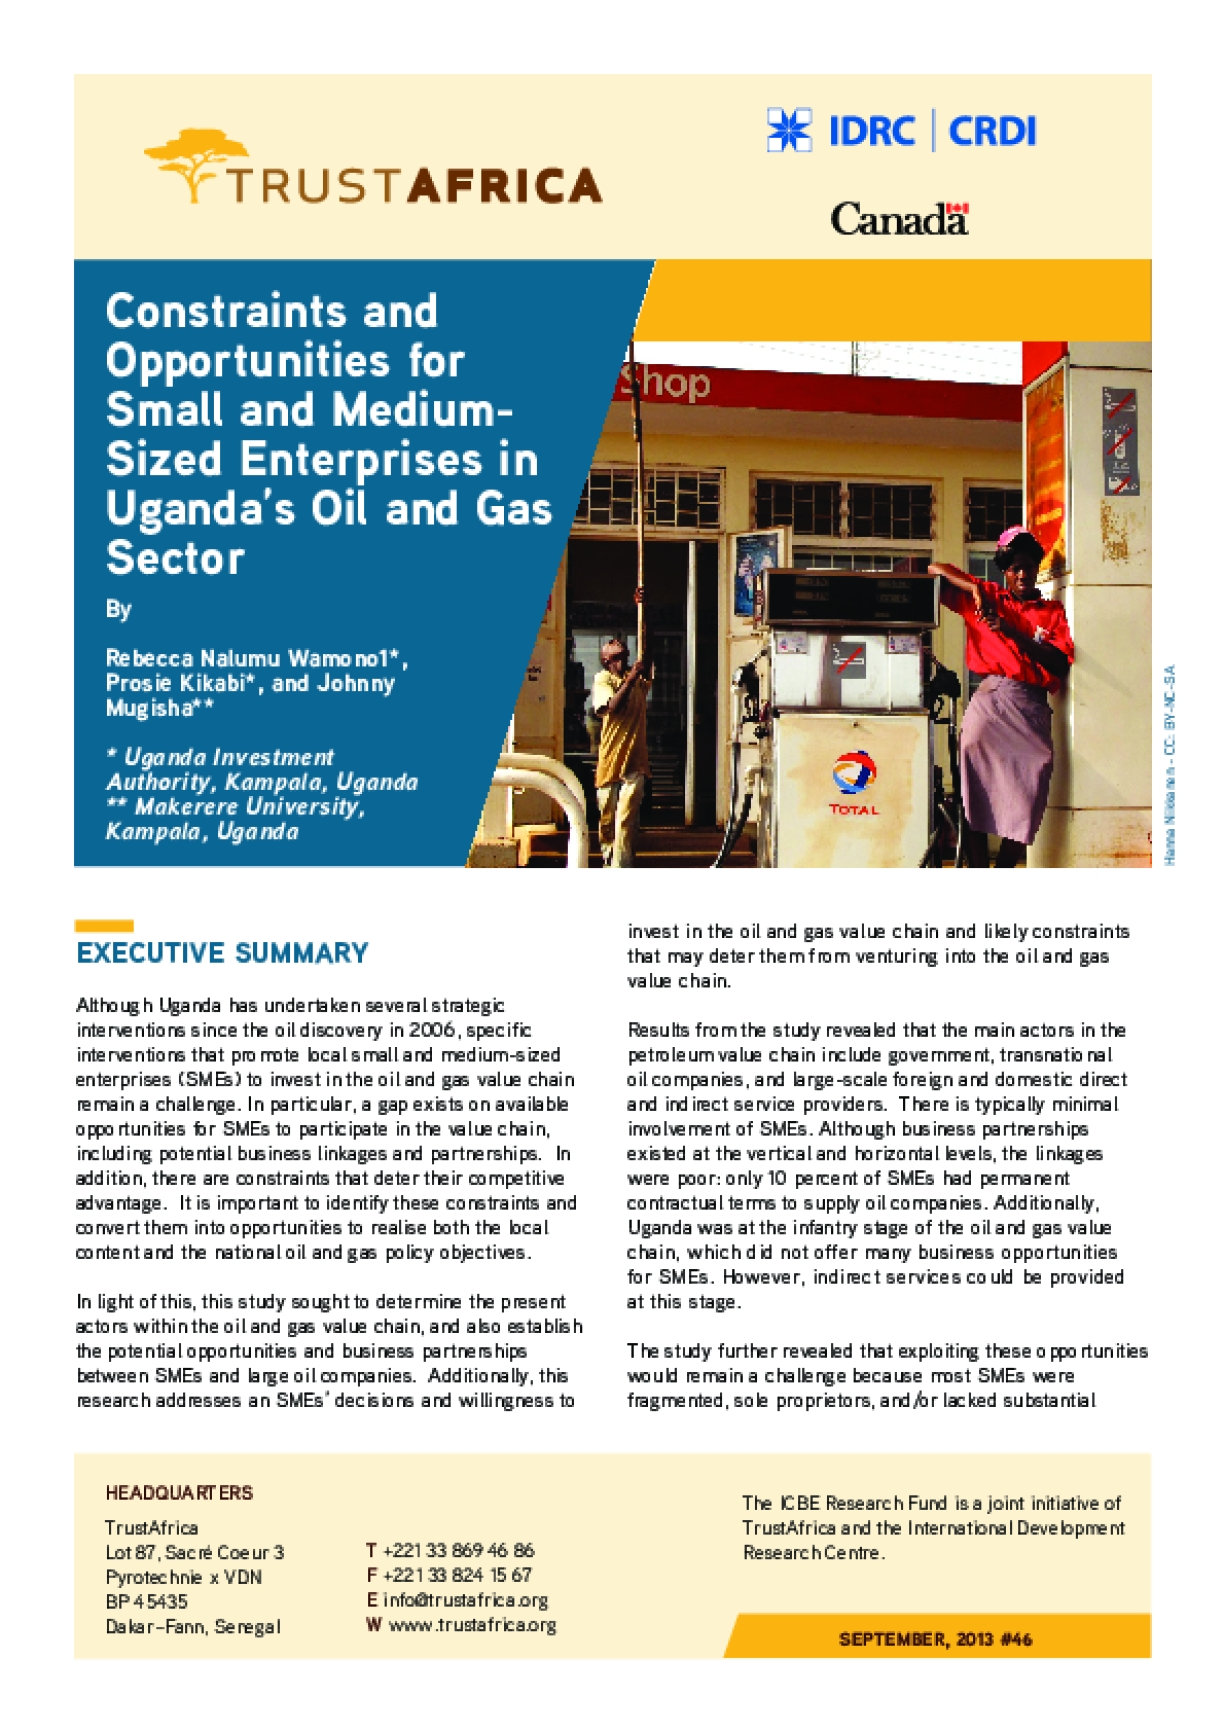 Constraints and Opportunities for Small and Medium- Sized Enterprises in Uganda's Oil and Gas Sector